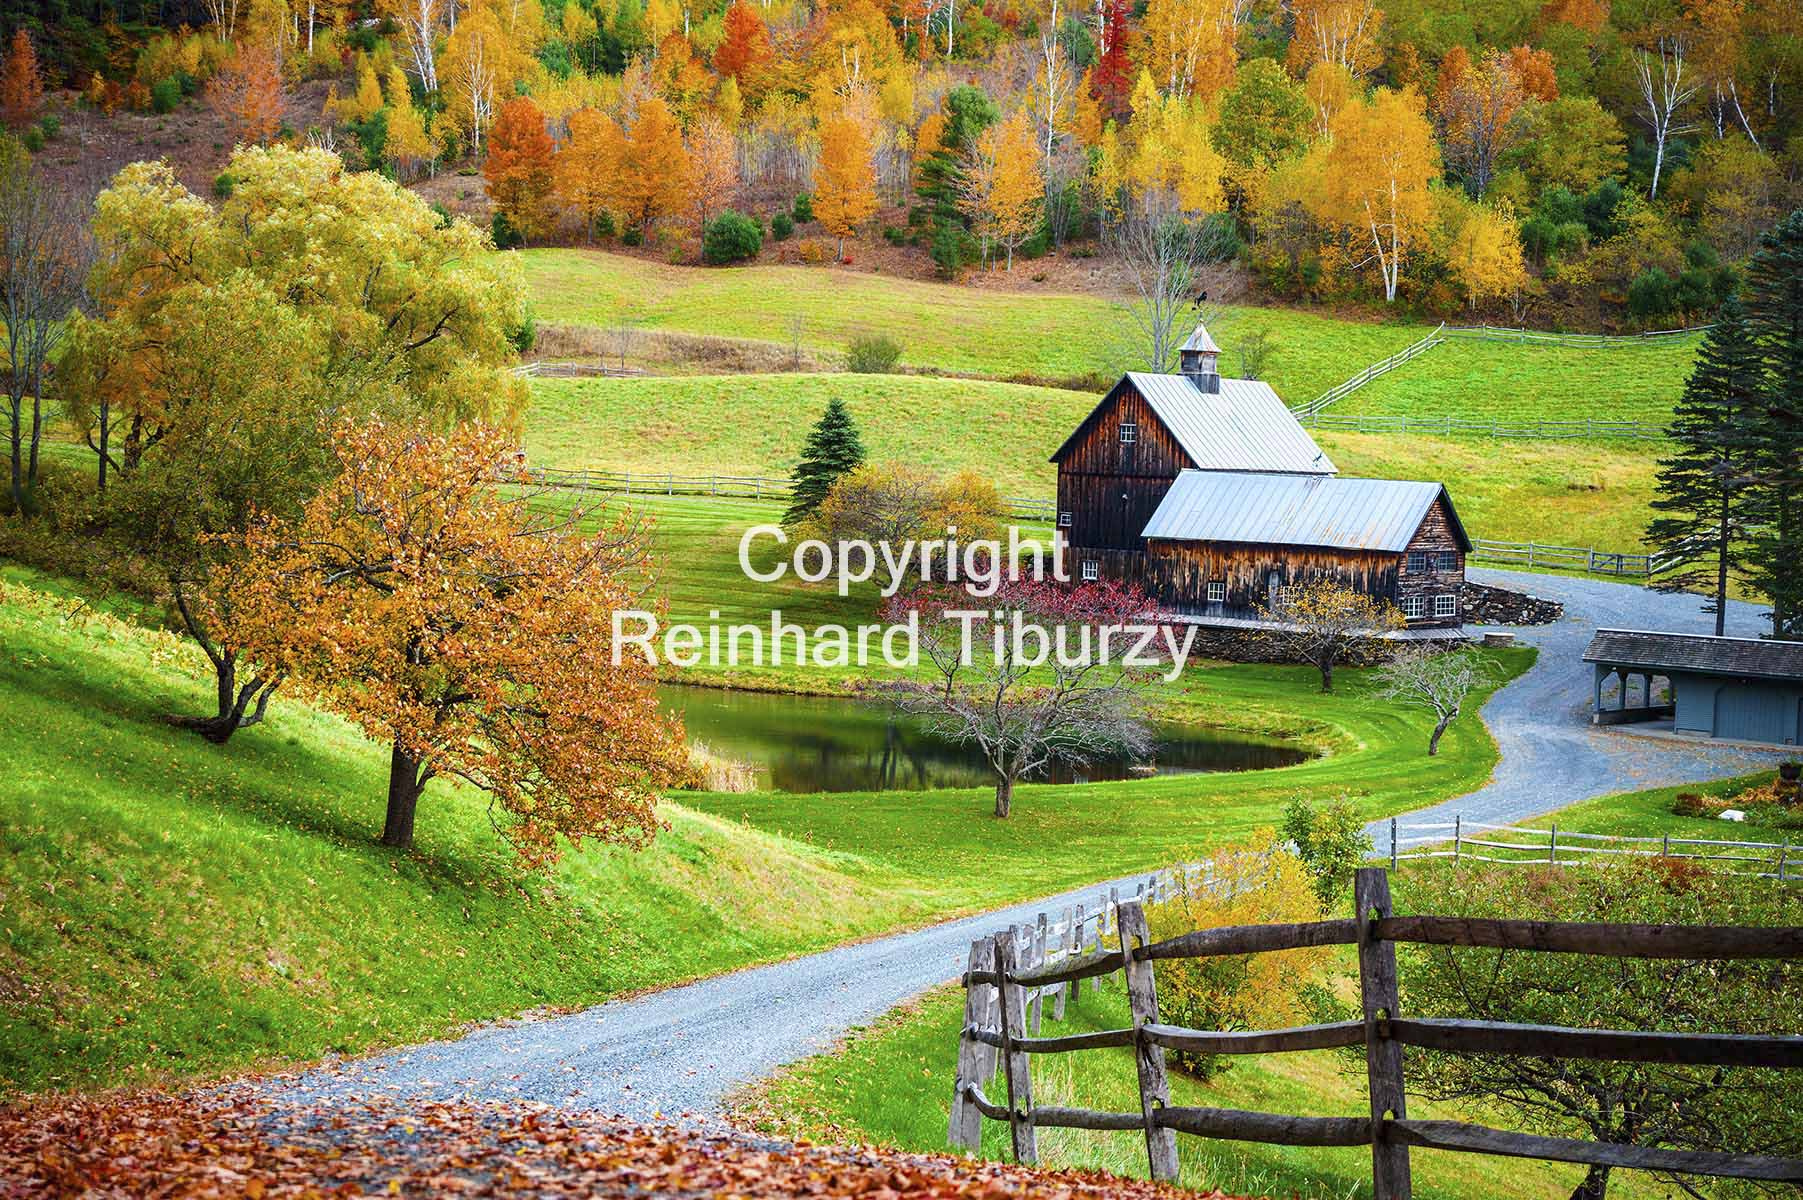 New England countryside, farm in autumn, Herbst, Indian summer, Vermont, USA, foliage, färbung, Herbstfärbung, color , coloring, coloration, farm, trees, laub, blätter, meadow, wiese